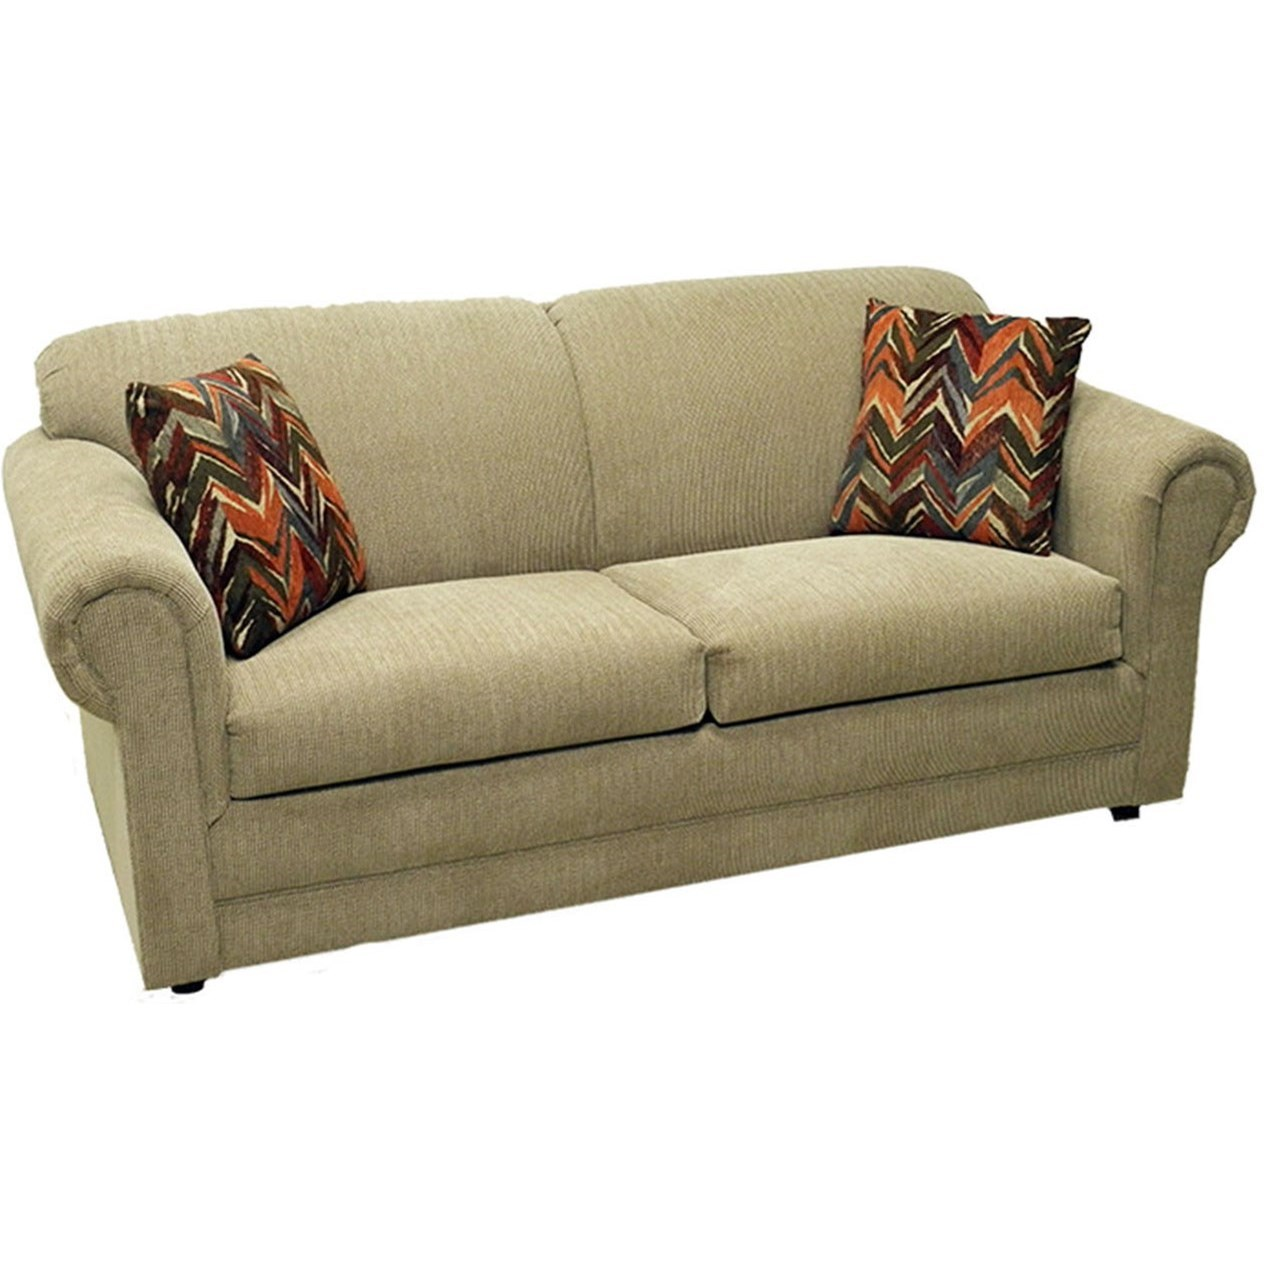 LaCrosse Hayden Full Sofa Sleeper - Item Number: 991507A-TahoeBarley